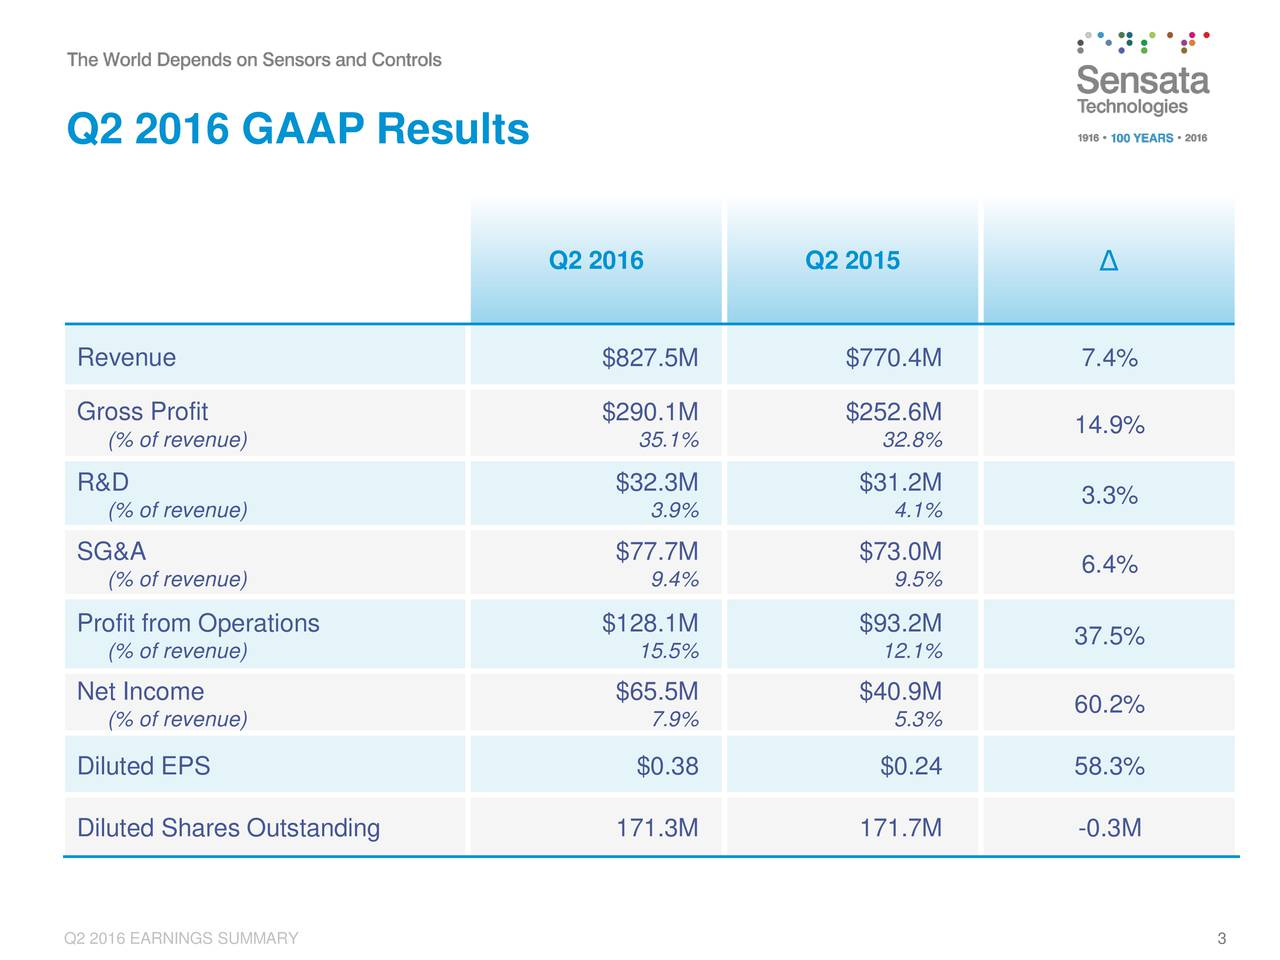 Q2 2016 Q2 2015 Revenue $827.5M $770.4M 7.4% Gross Profit $290.1M $252.6M 14.9% (% of revenue) 35.1% 32.8% R&D $32.3M $31.2M 3.3% (% of revenue) 3.9% 4.1% SG&A $77.7M $73.0M (% of revenue) 9.4% 9.5% 6.4% Profit from Operations $128.1M $93.2M (% of revenue) 15.5% 12.1% 37.5% Net Income $65.5M $40.9M (% of revenue) 7.9% 5.3% 60.2% Diluted EPS $0.38 $0.24 58.3% Diluted Shares Outstanding 171.3M 171.7M -0.3M Q2 2016 EARNINGS SUMMARY 3